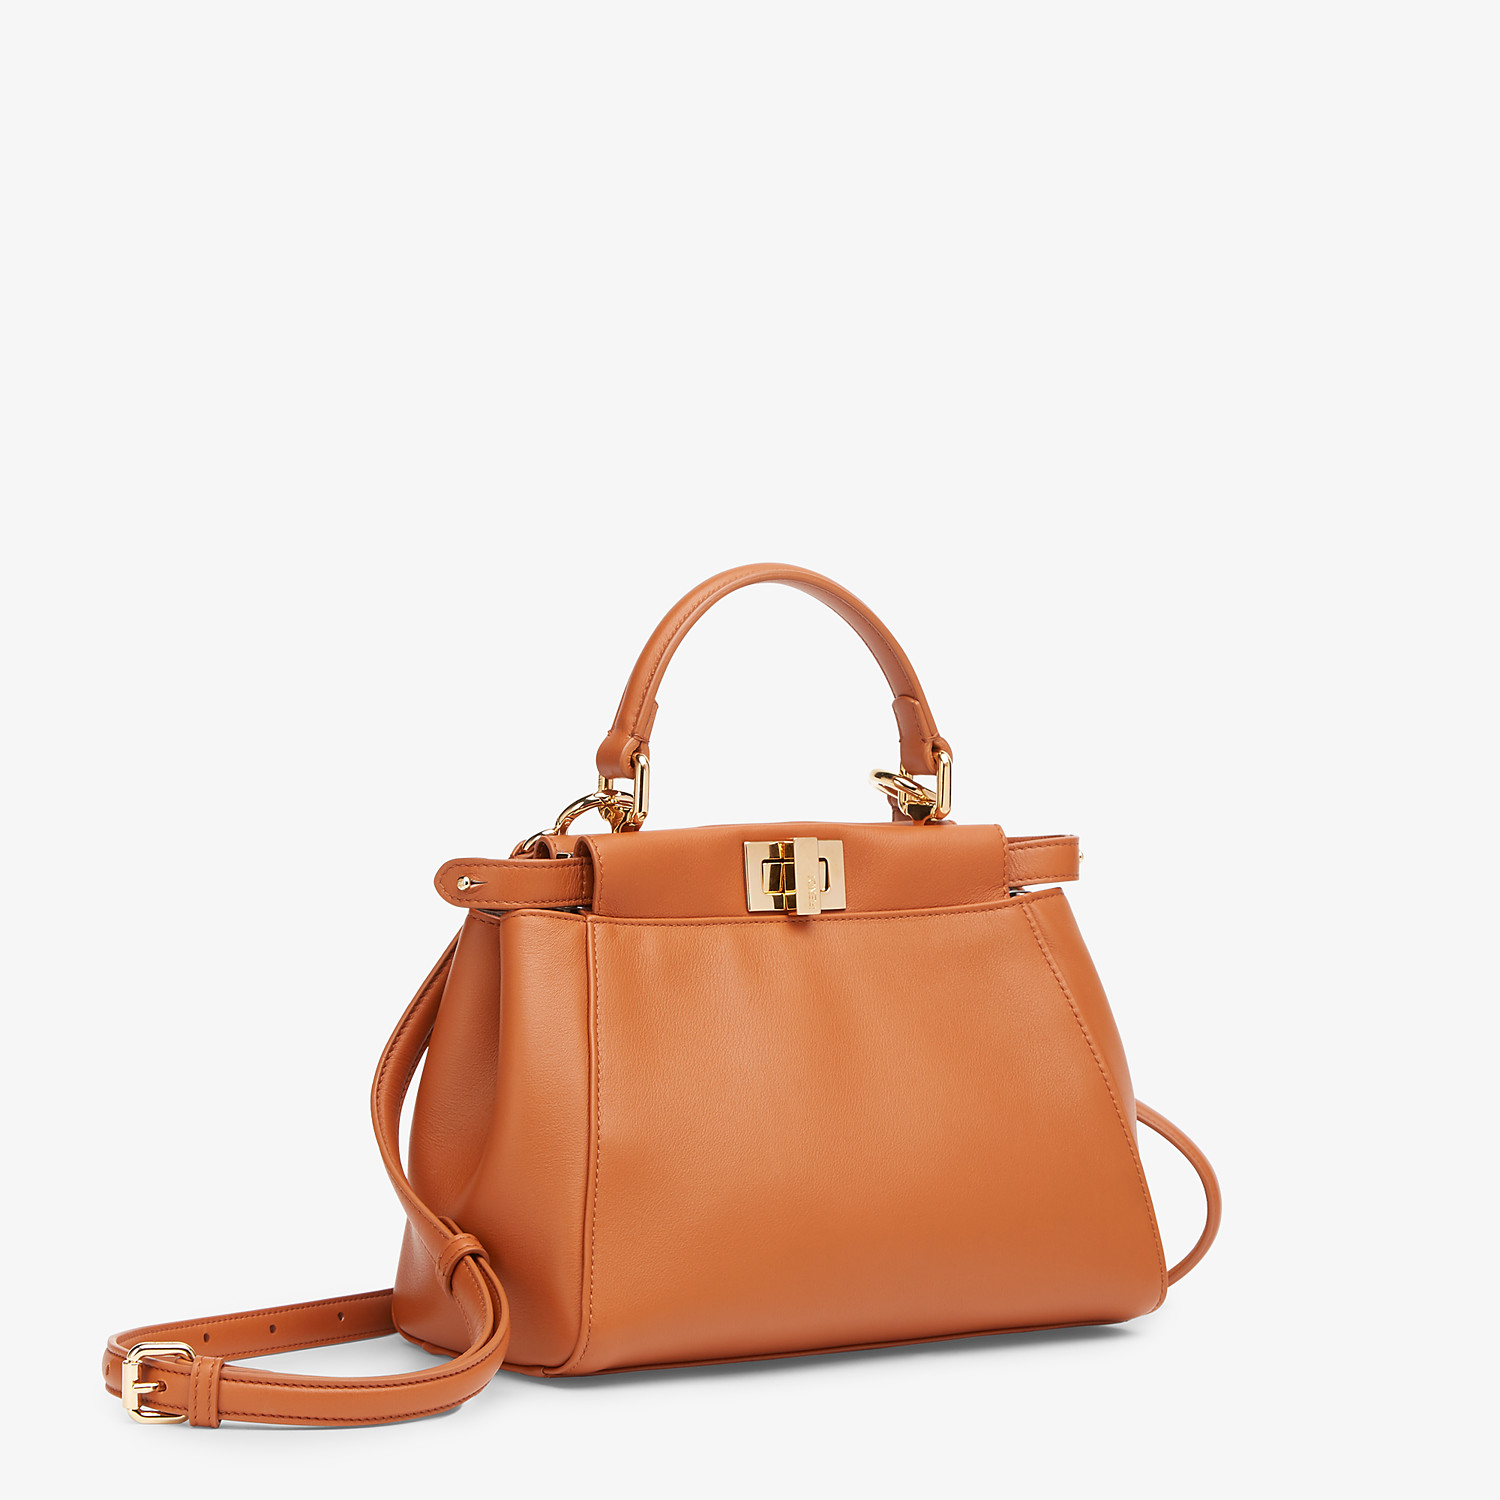 FENDI PEEKABOO ICONIC MINI - Brown nappa leather bag - view 3 detail